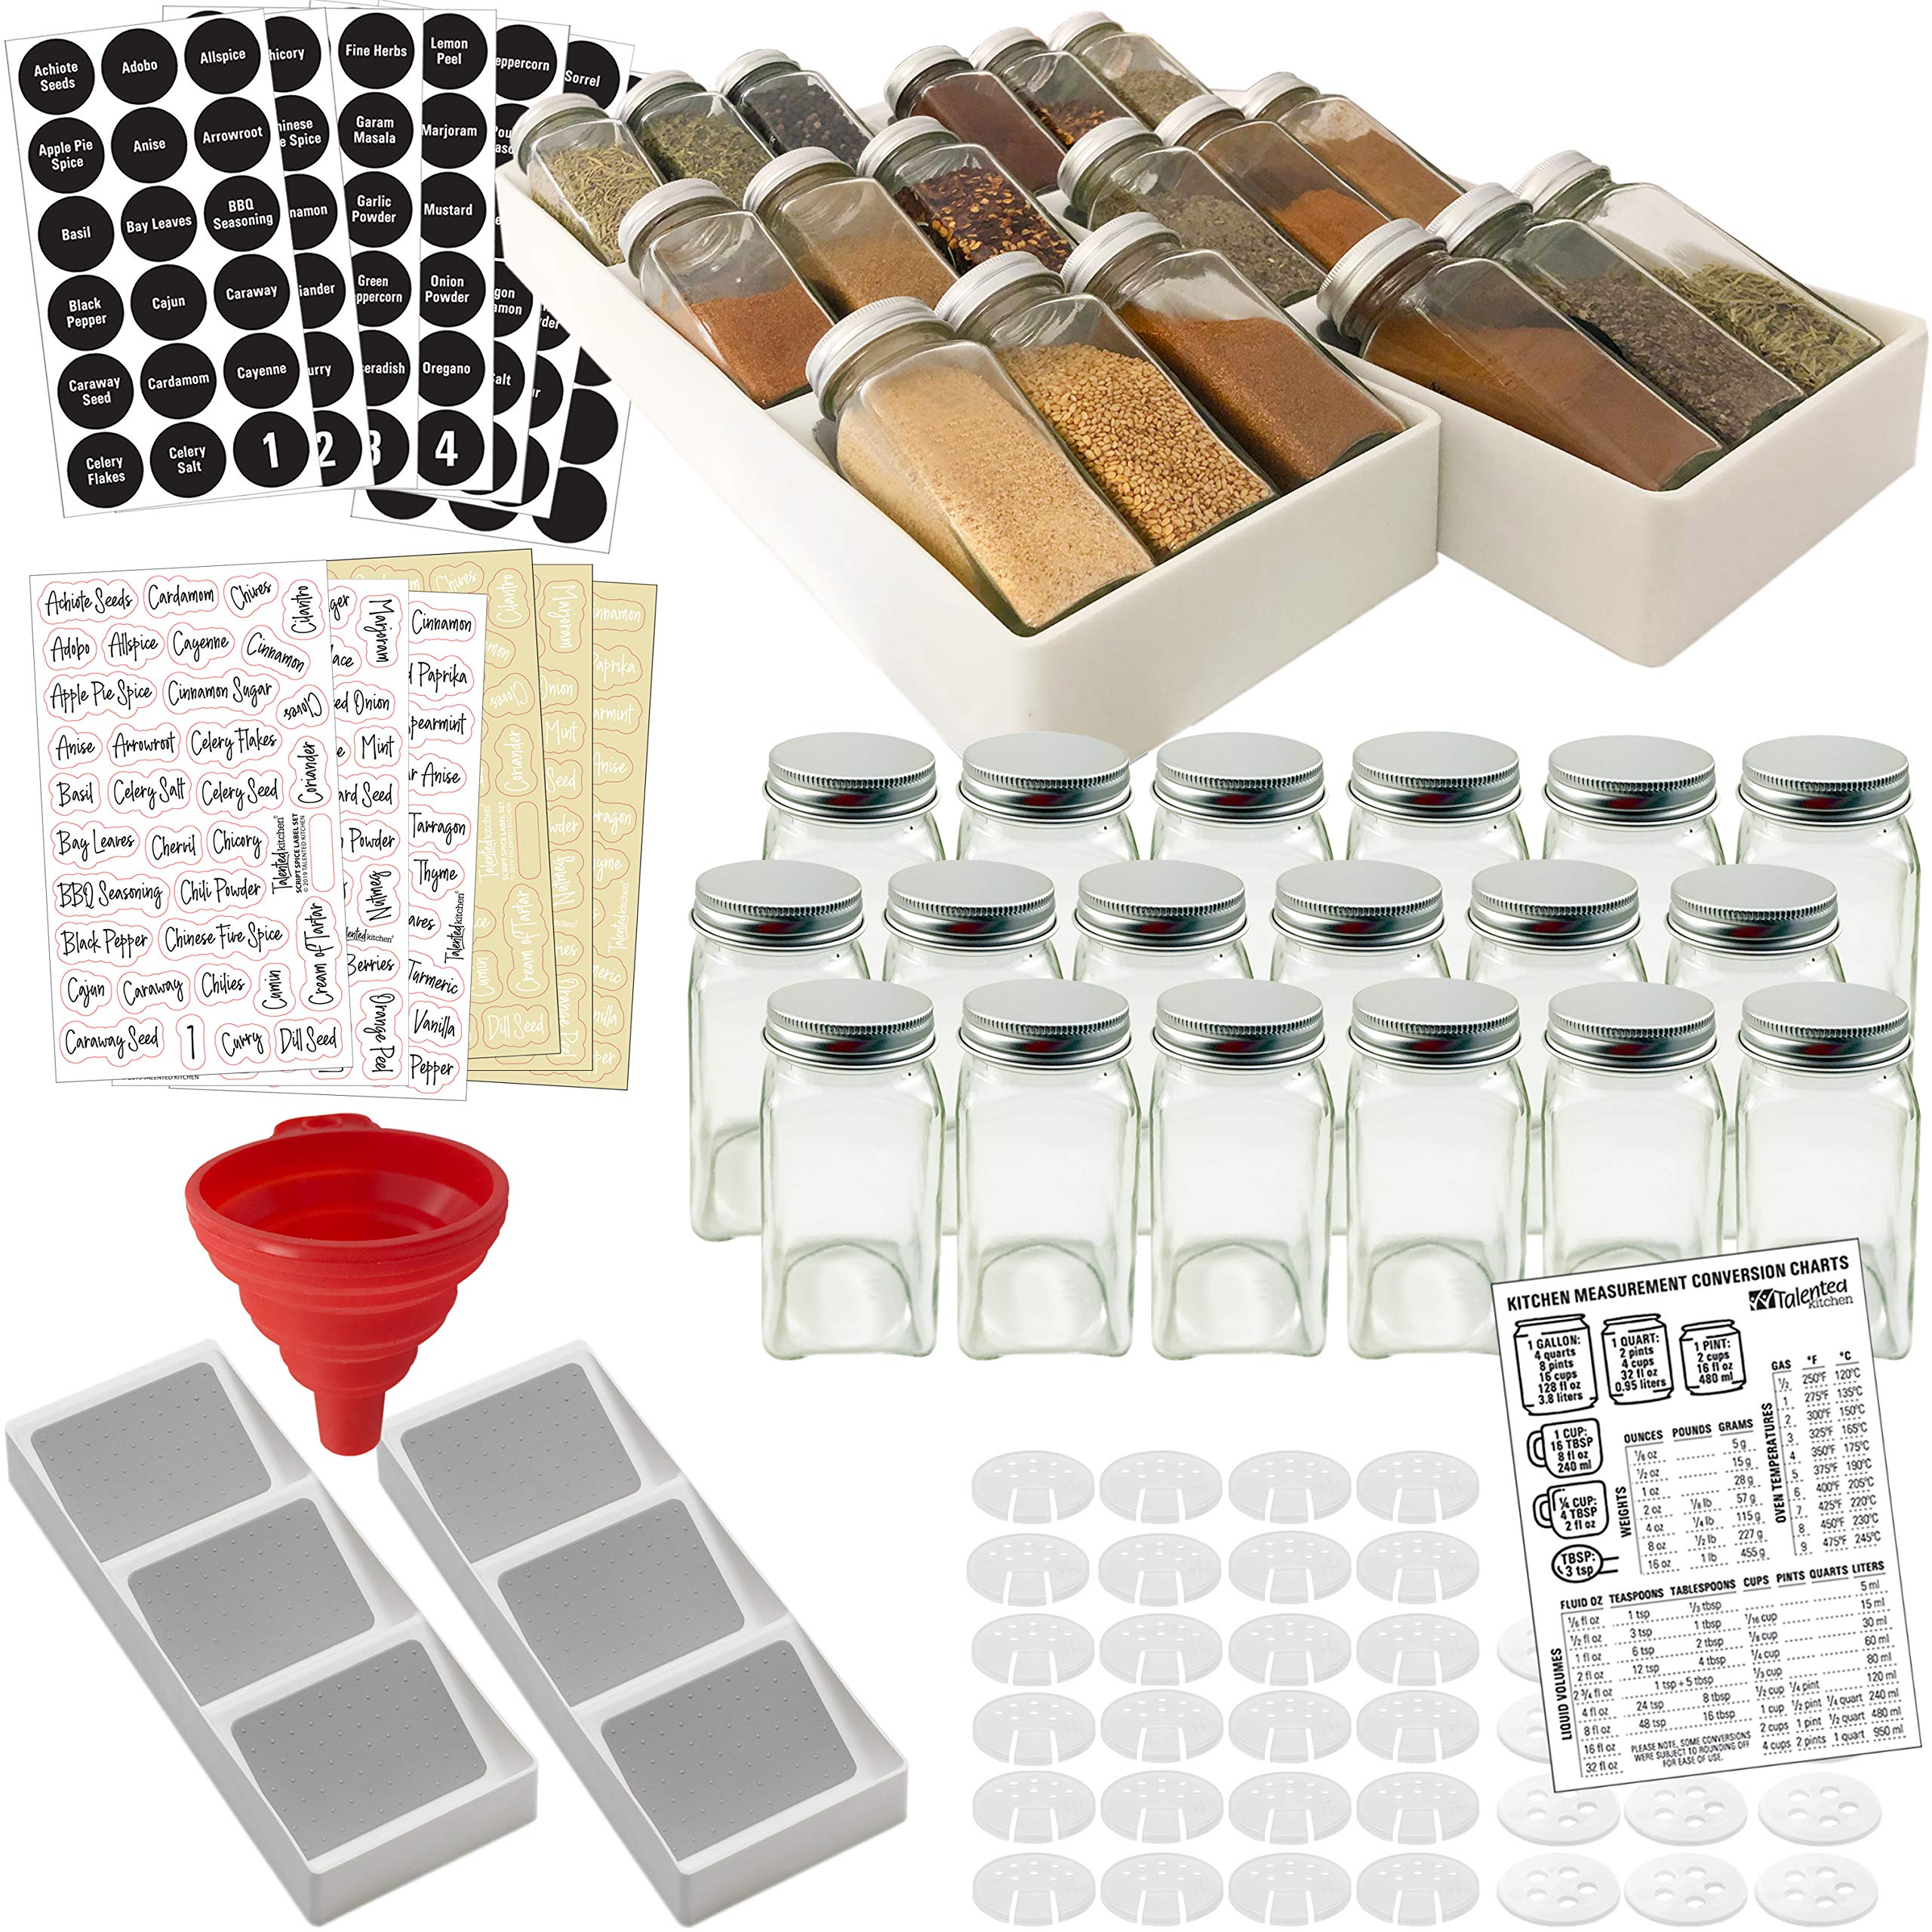 Spice Rack Drawer Organizer w/18 Glass Spice Jars & 2 Types of Printed Spice Labels by Talented Kitchen. Complete Set: 2 Drawer Trays, 18 Square Empty Glass Jar 4oz, Chalk & Clear Label by Talented Kitchen